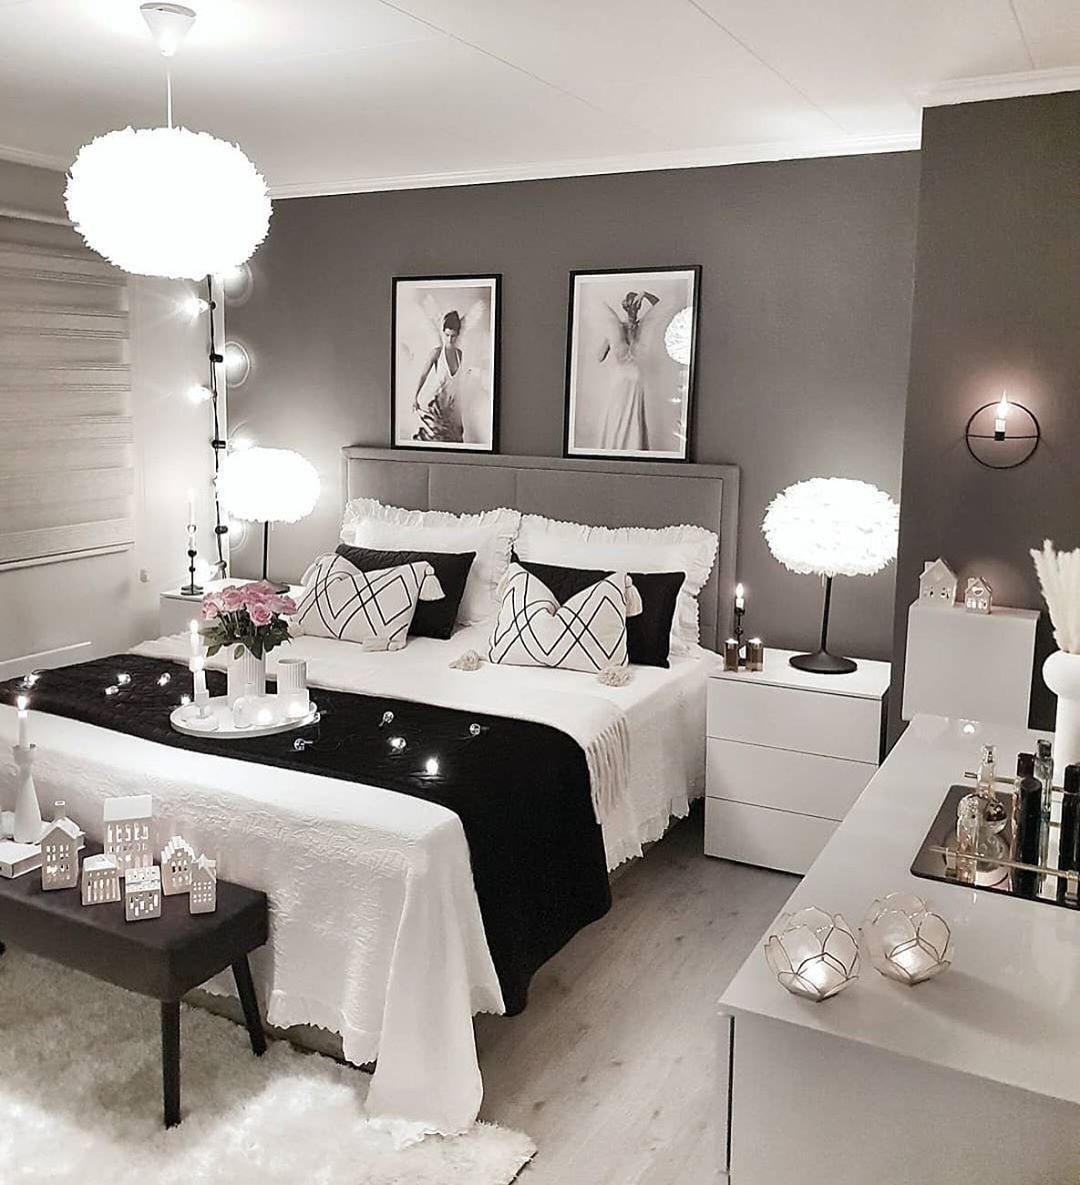 Pin On Bedroom Inspirations